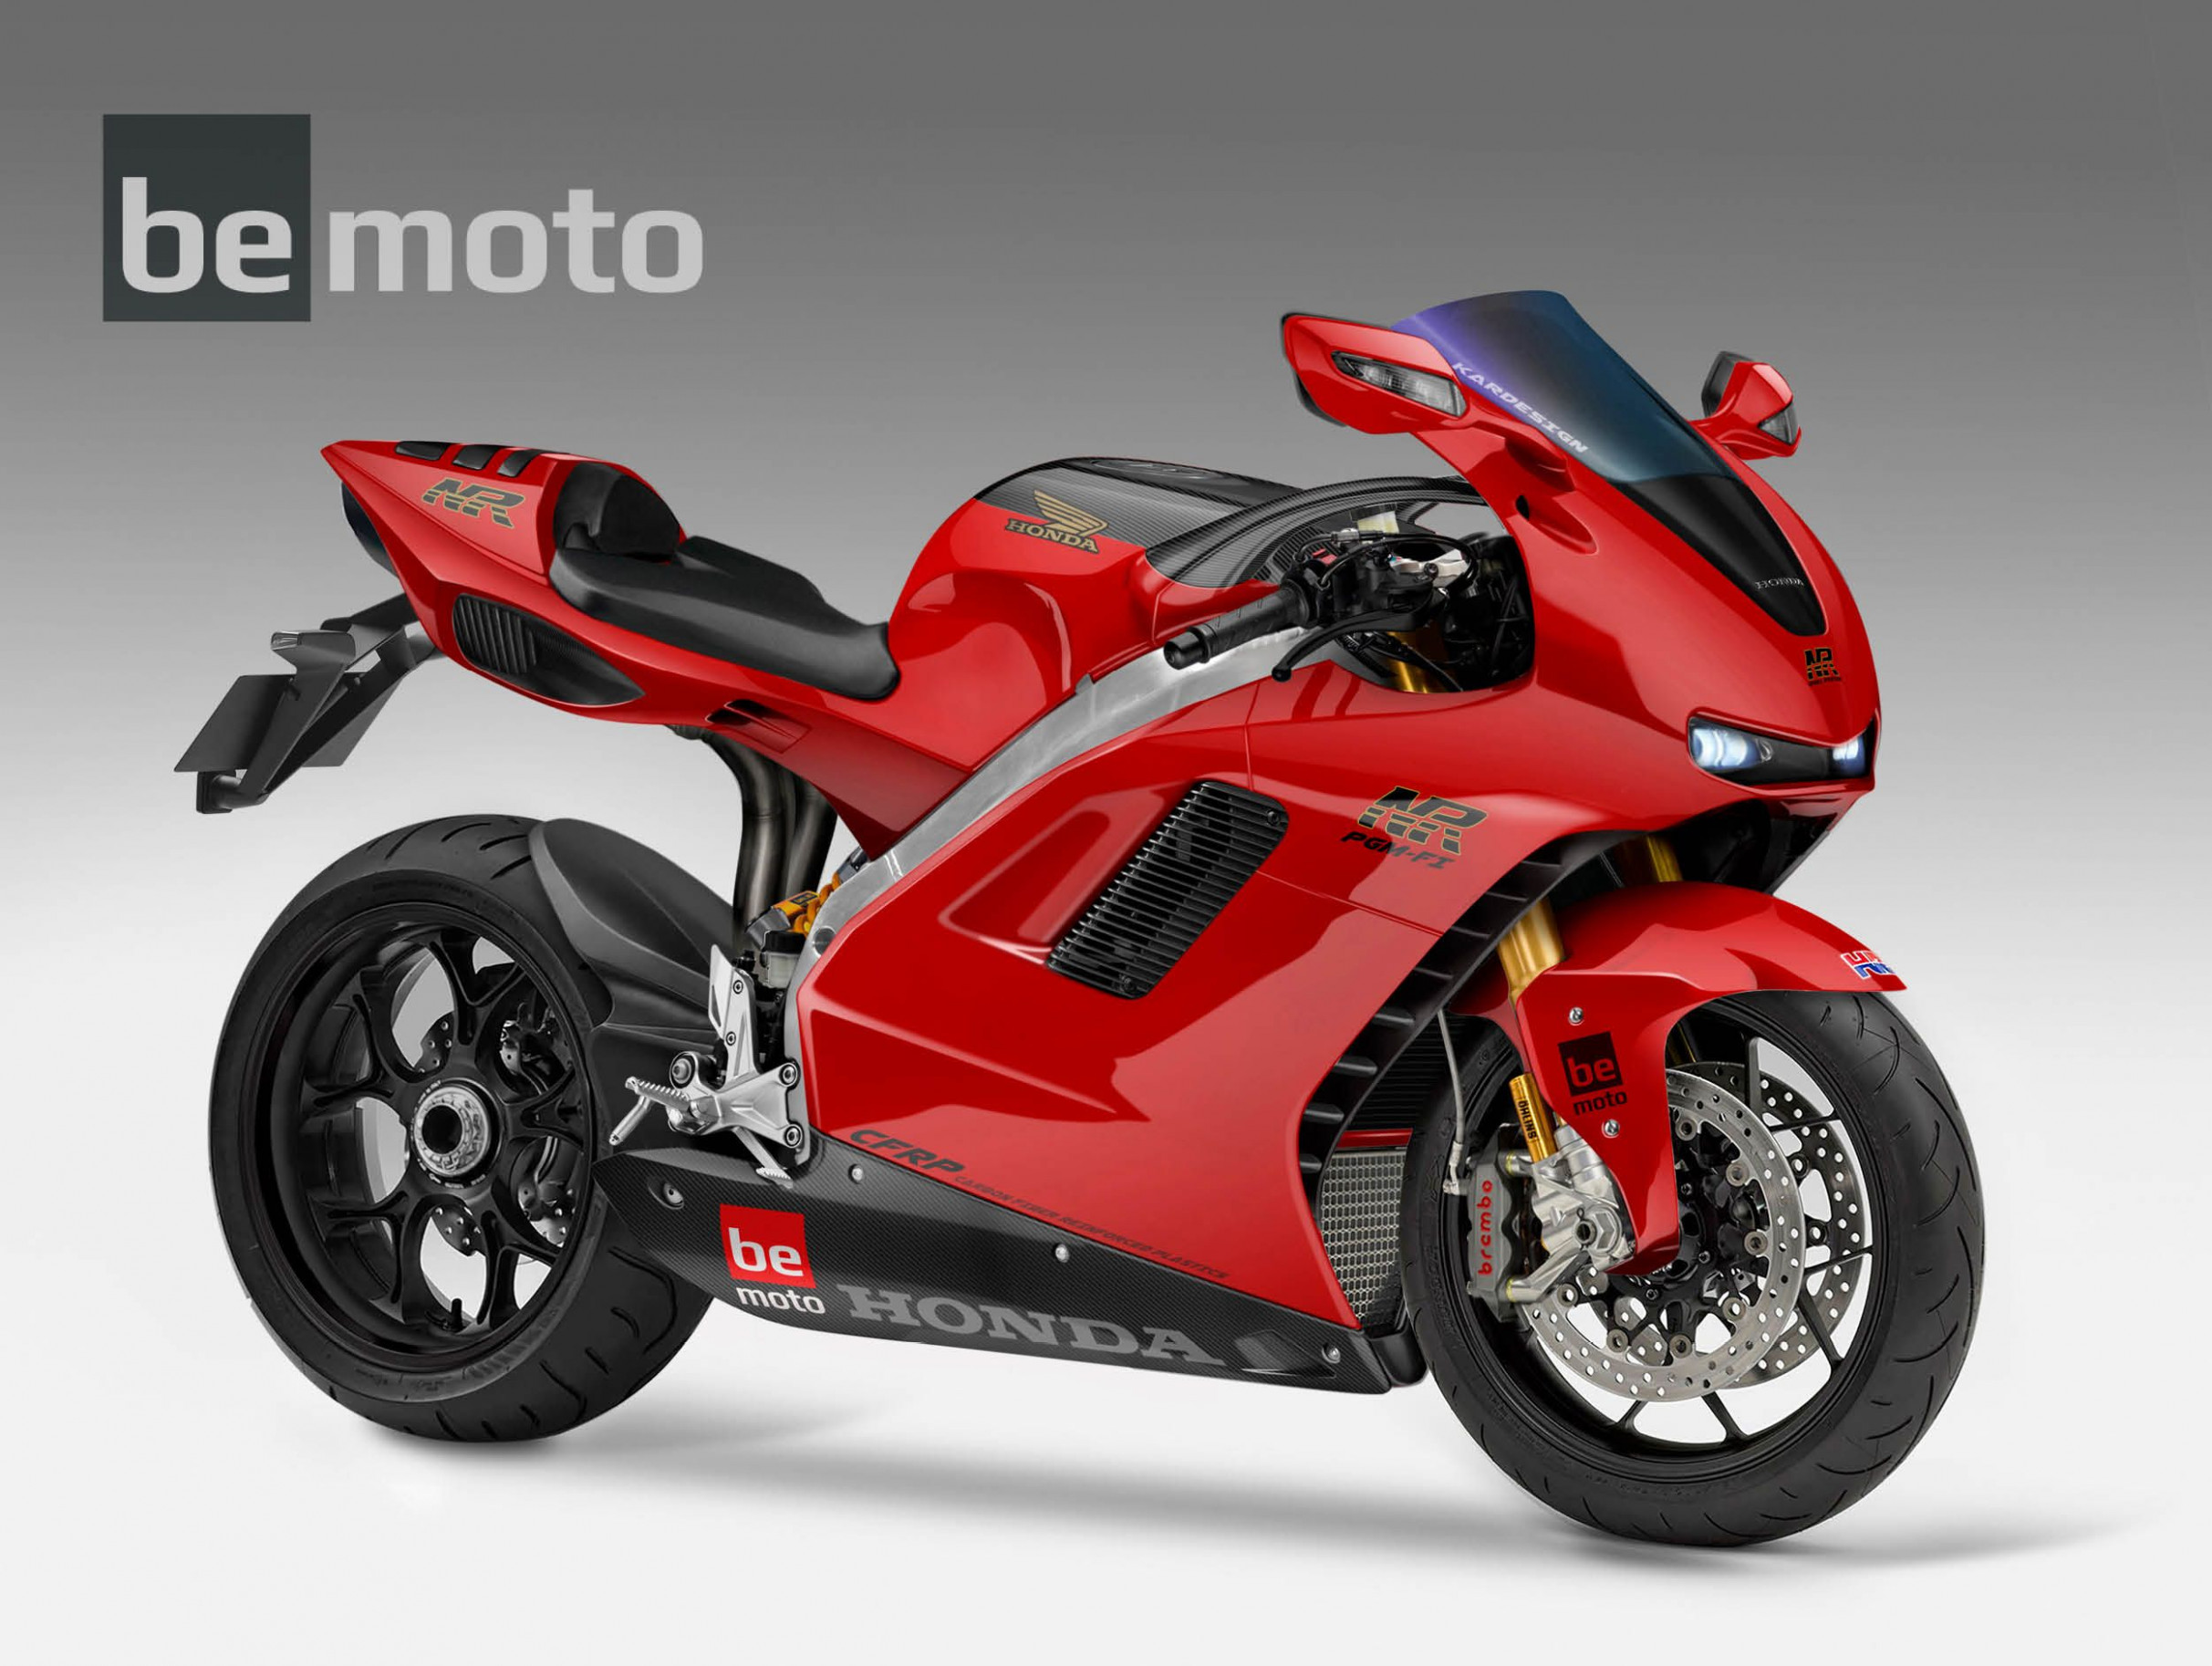 8 Honda NR8 V8 Oval Piston concept bike | BeMoto